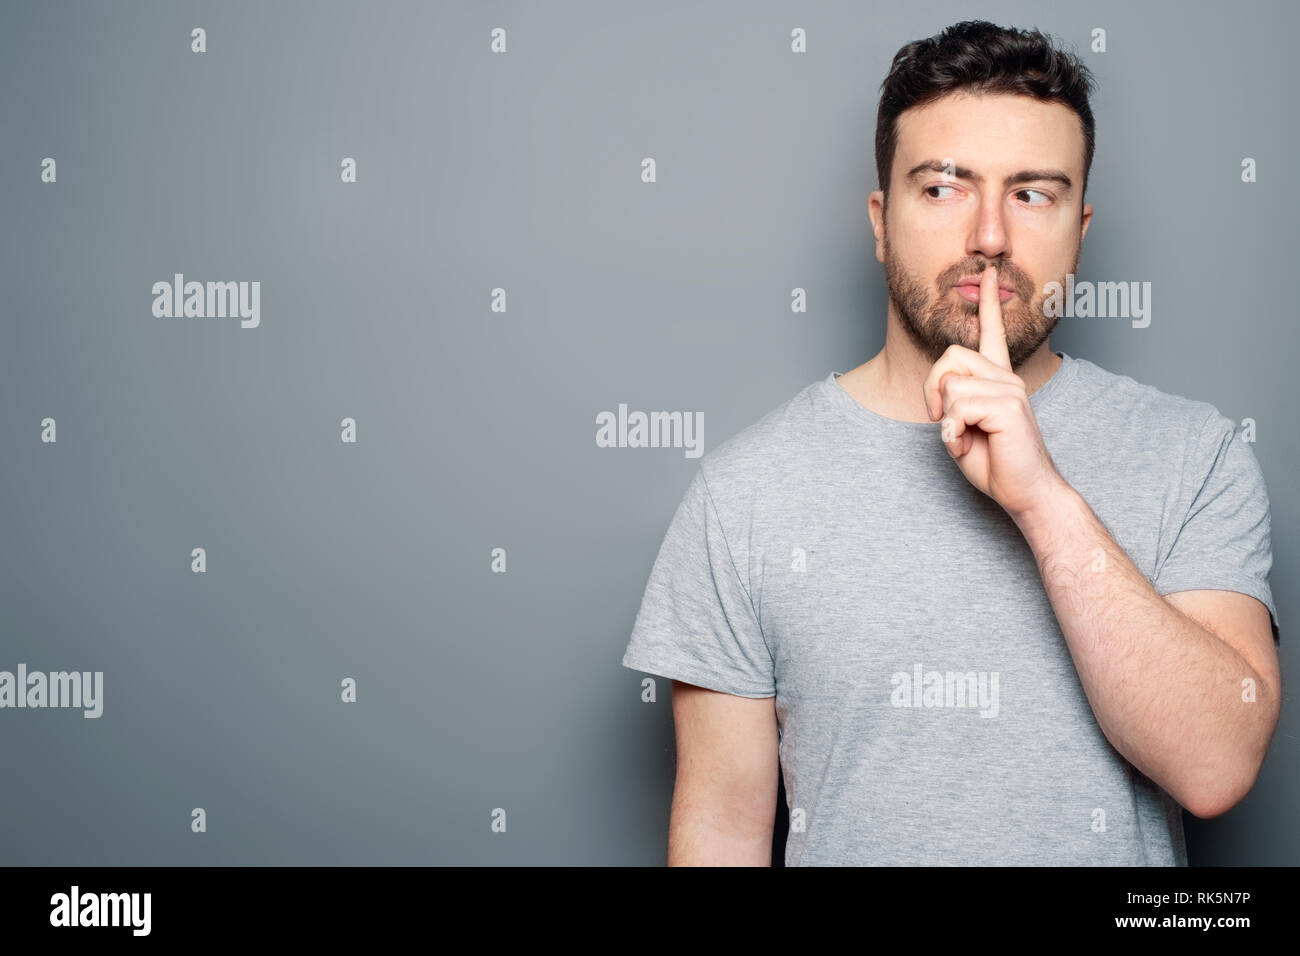 Man making silence gesture on gray background - Stock Image